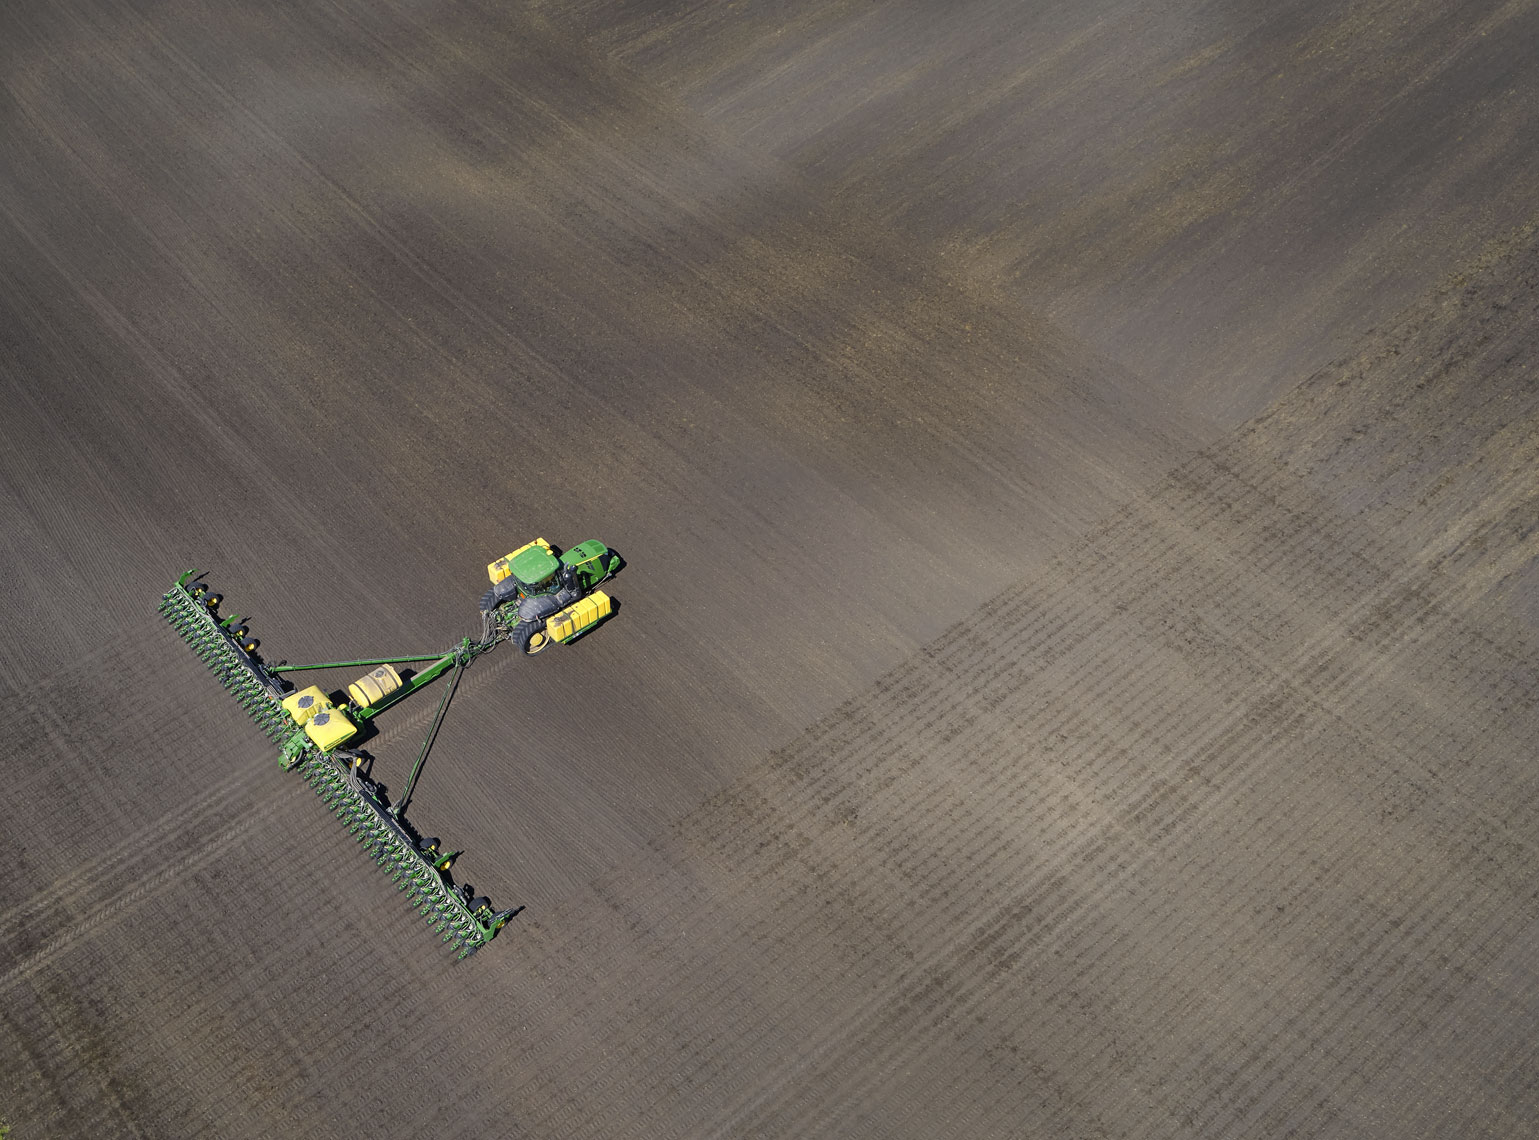 Drone/agricultural photography/farm equipment/InsideOut Studios